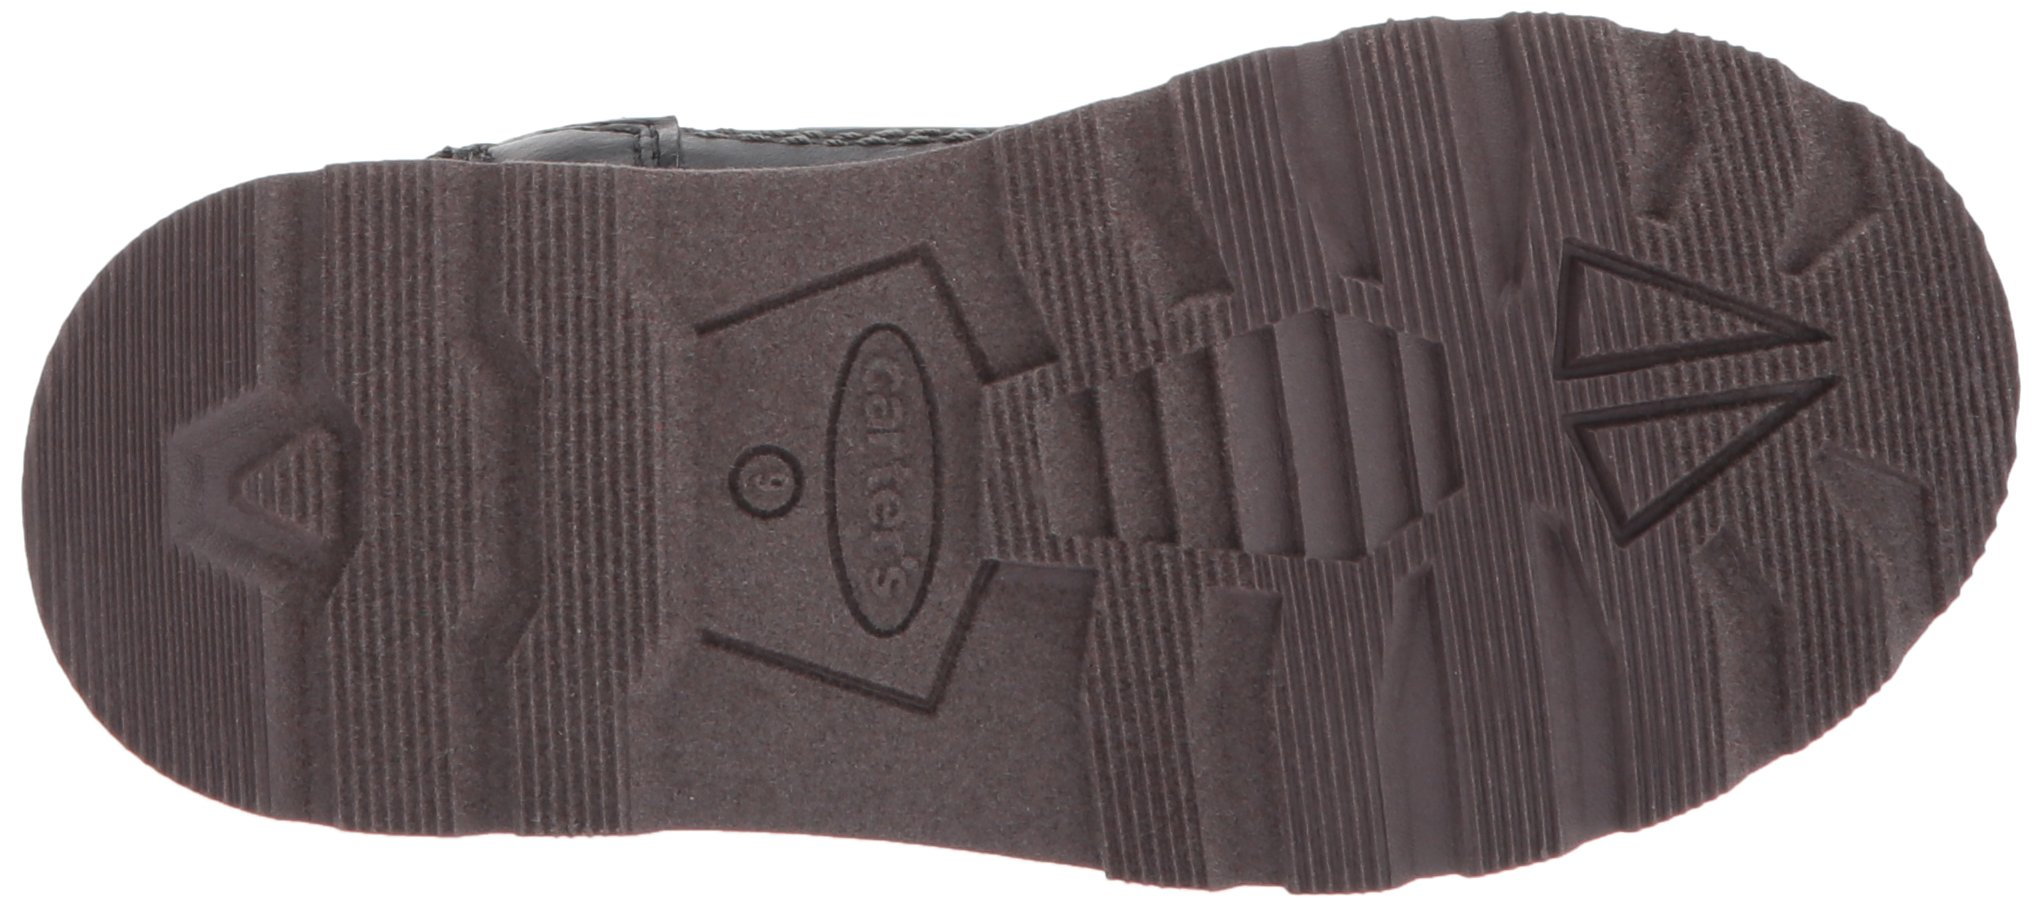 Carter's Boys' Galaway Fashion Boot, Black/Grey, 11 M US Little Kid by Carter's (Image #3)